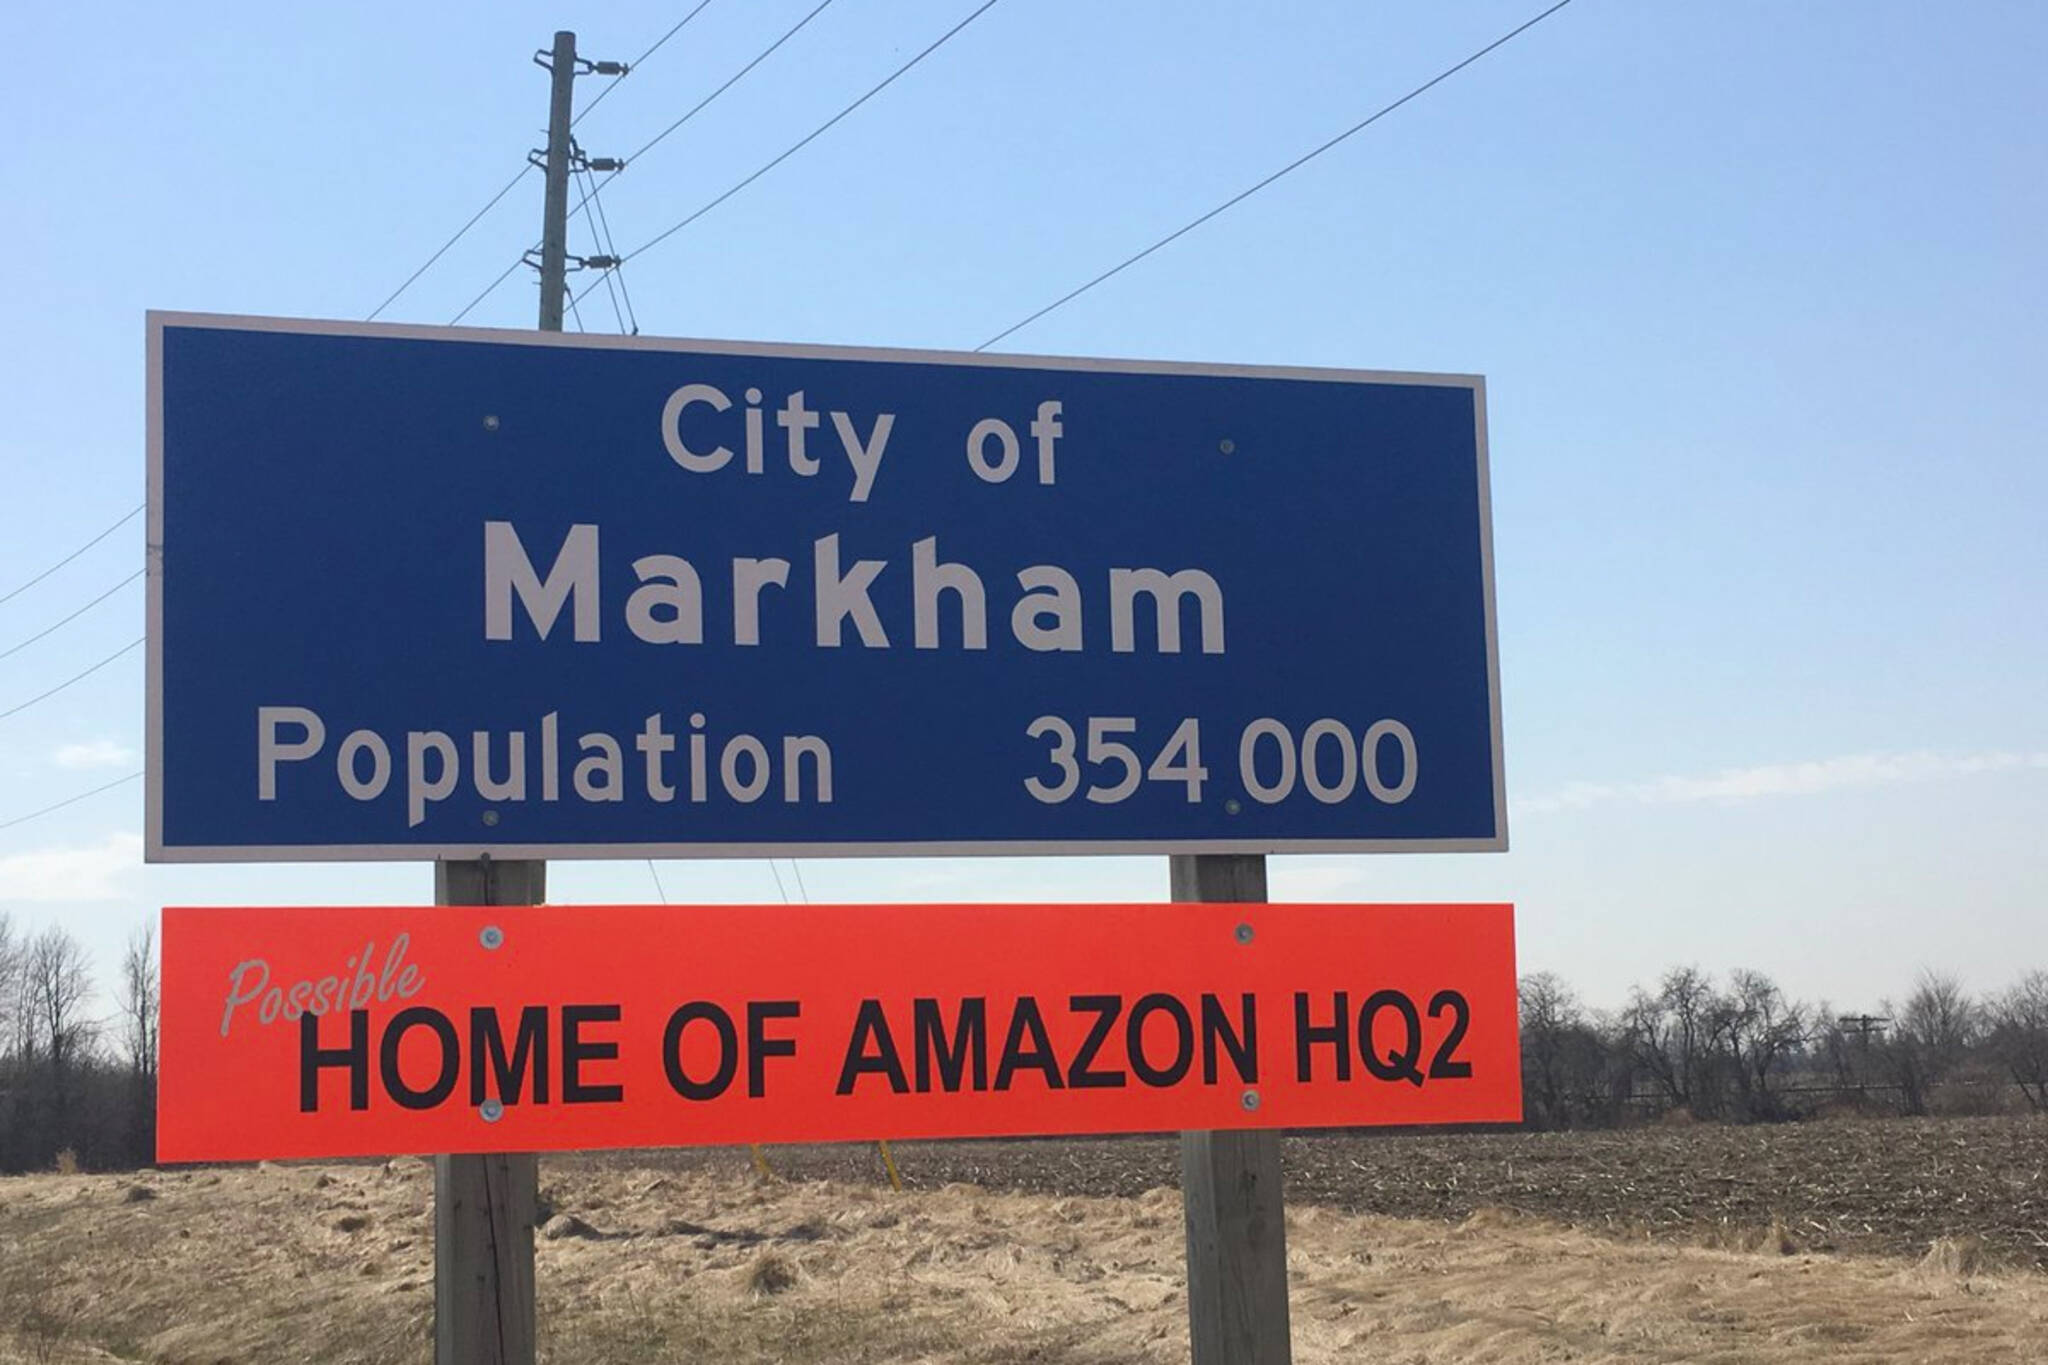 Markham Amazon HQ2